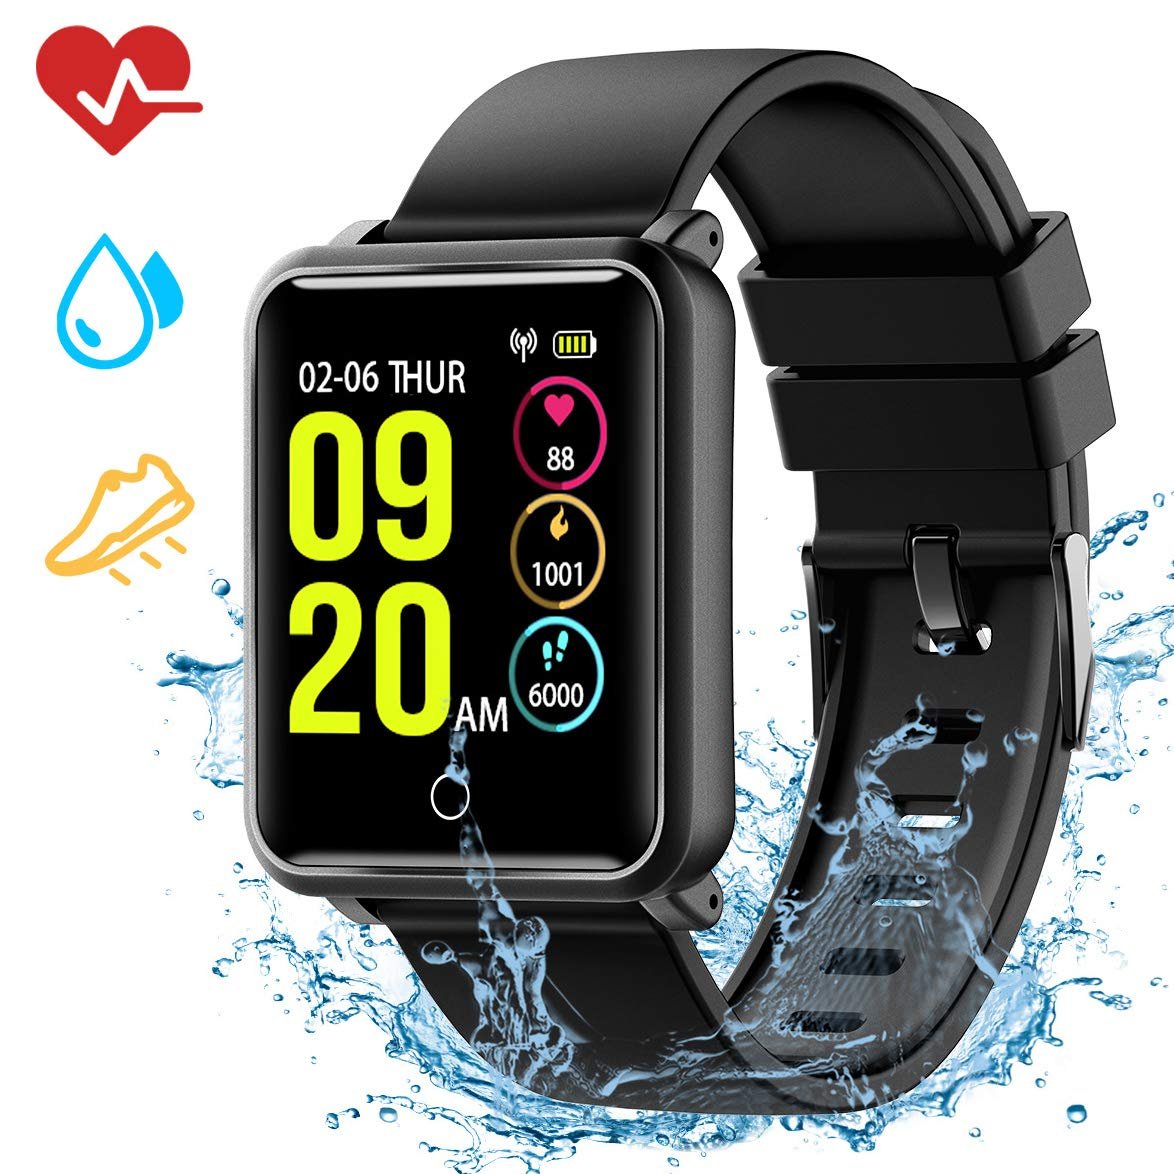 Fitness Tracker, Smart Watch with Sleep Monitor, IP68 Waterproof Level Heart Rate Monitor,Calorie Counter Activity Tracker,Call and Message Reminder